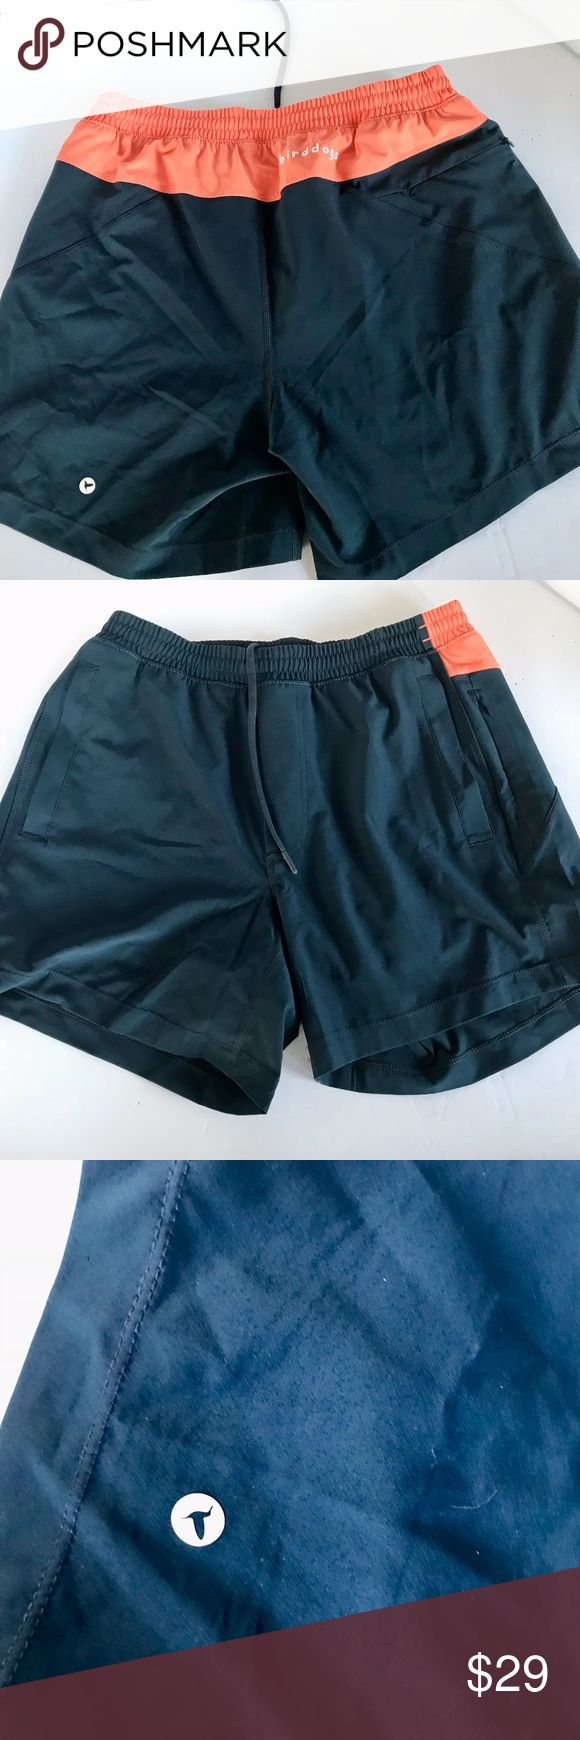 """Birddogs  Chester Copperpots Men's Gym Shorts Birddogs  Chester Copperpots Men's Gym Shorts . Size: Large:  Measurements. Length (waist to bottom edge): 15"""". Waist:30""""  (un-stretched) . Inseam: 6""""  Black & Melon Exterior , the liner is black. Drawstring Waist. 2 Front pockets. 1 zippered wallet pocket. 1 zippered phone pocket No rips, tears or pilling - Based on the interior label they weren't worn very often. Smoke Free, we have cats.  These Large Birddogs Chester Copperpots gym shorts…"""